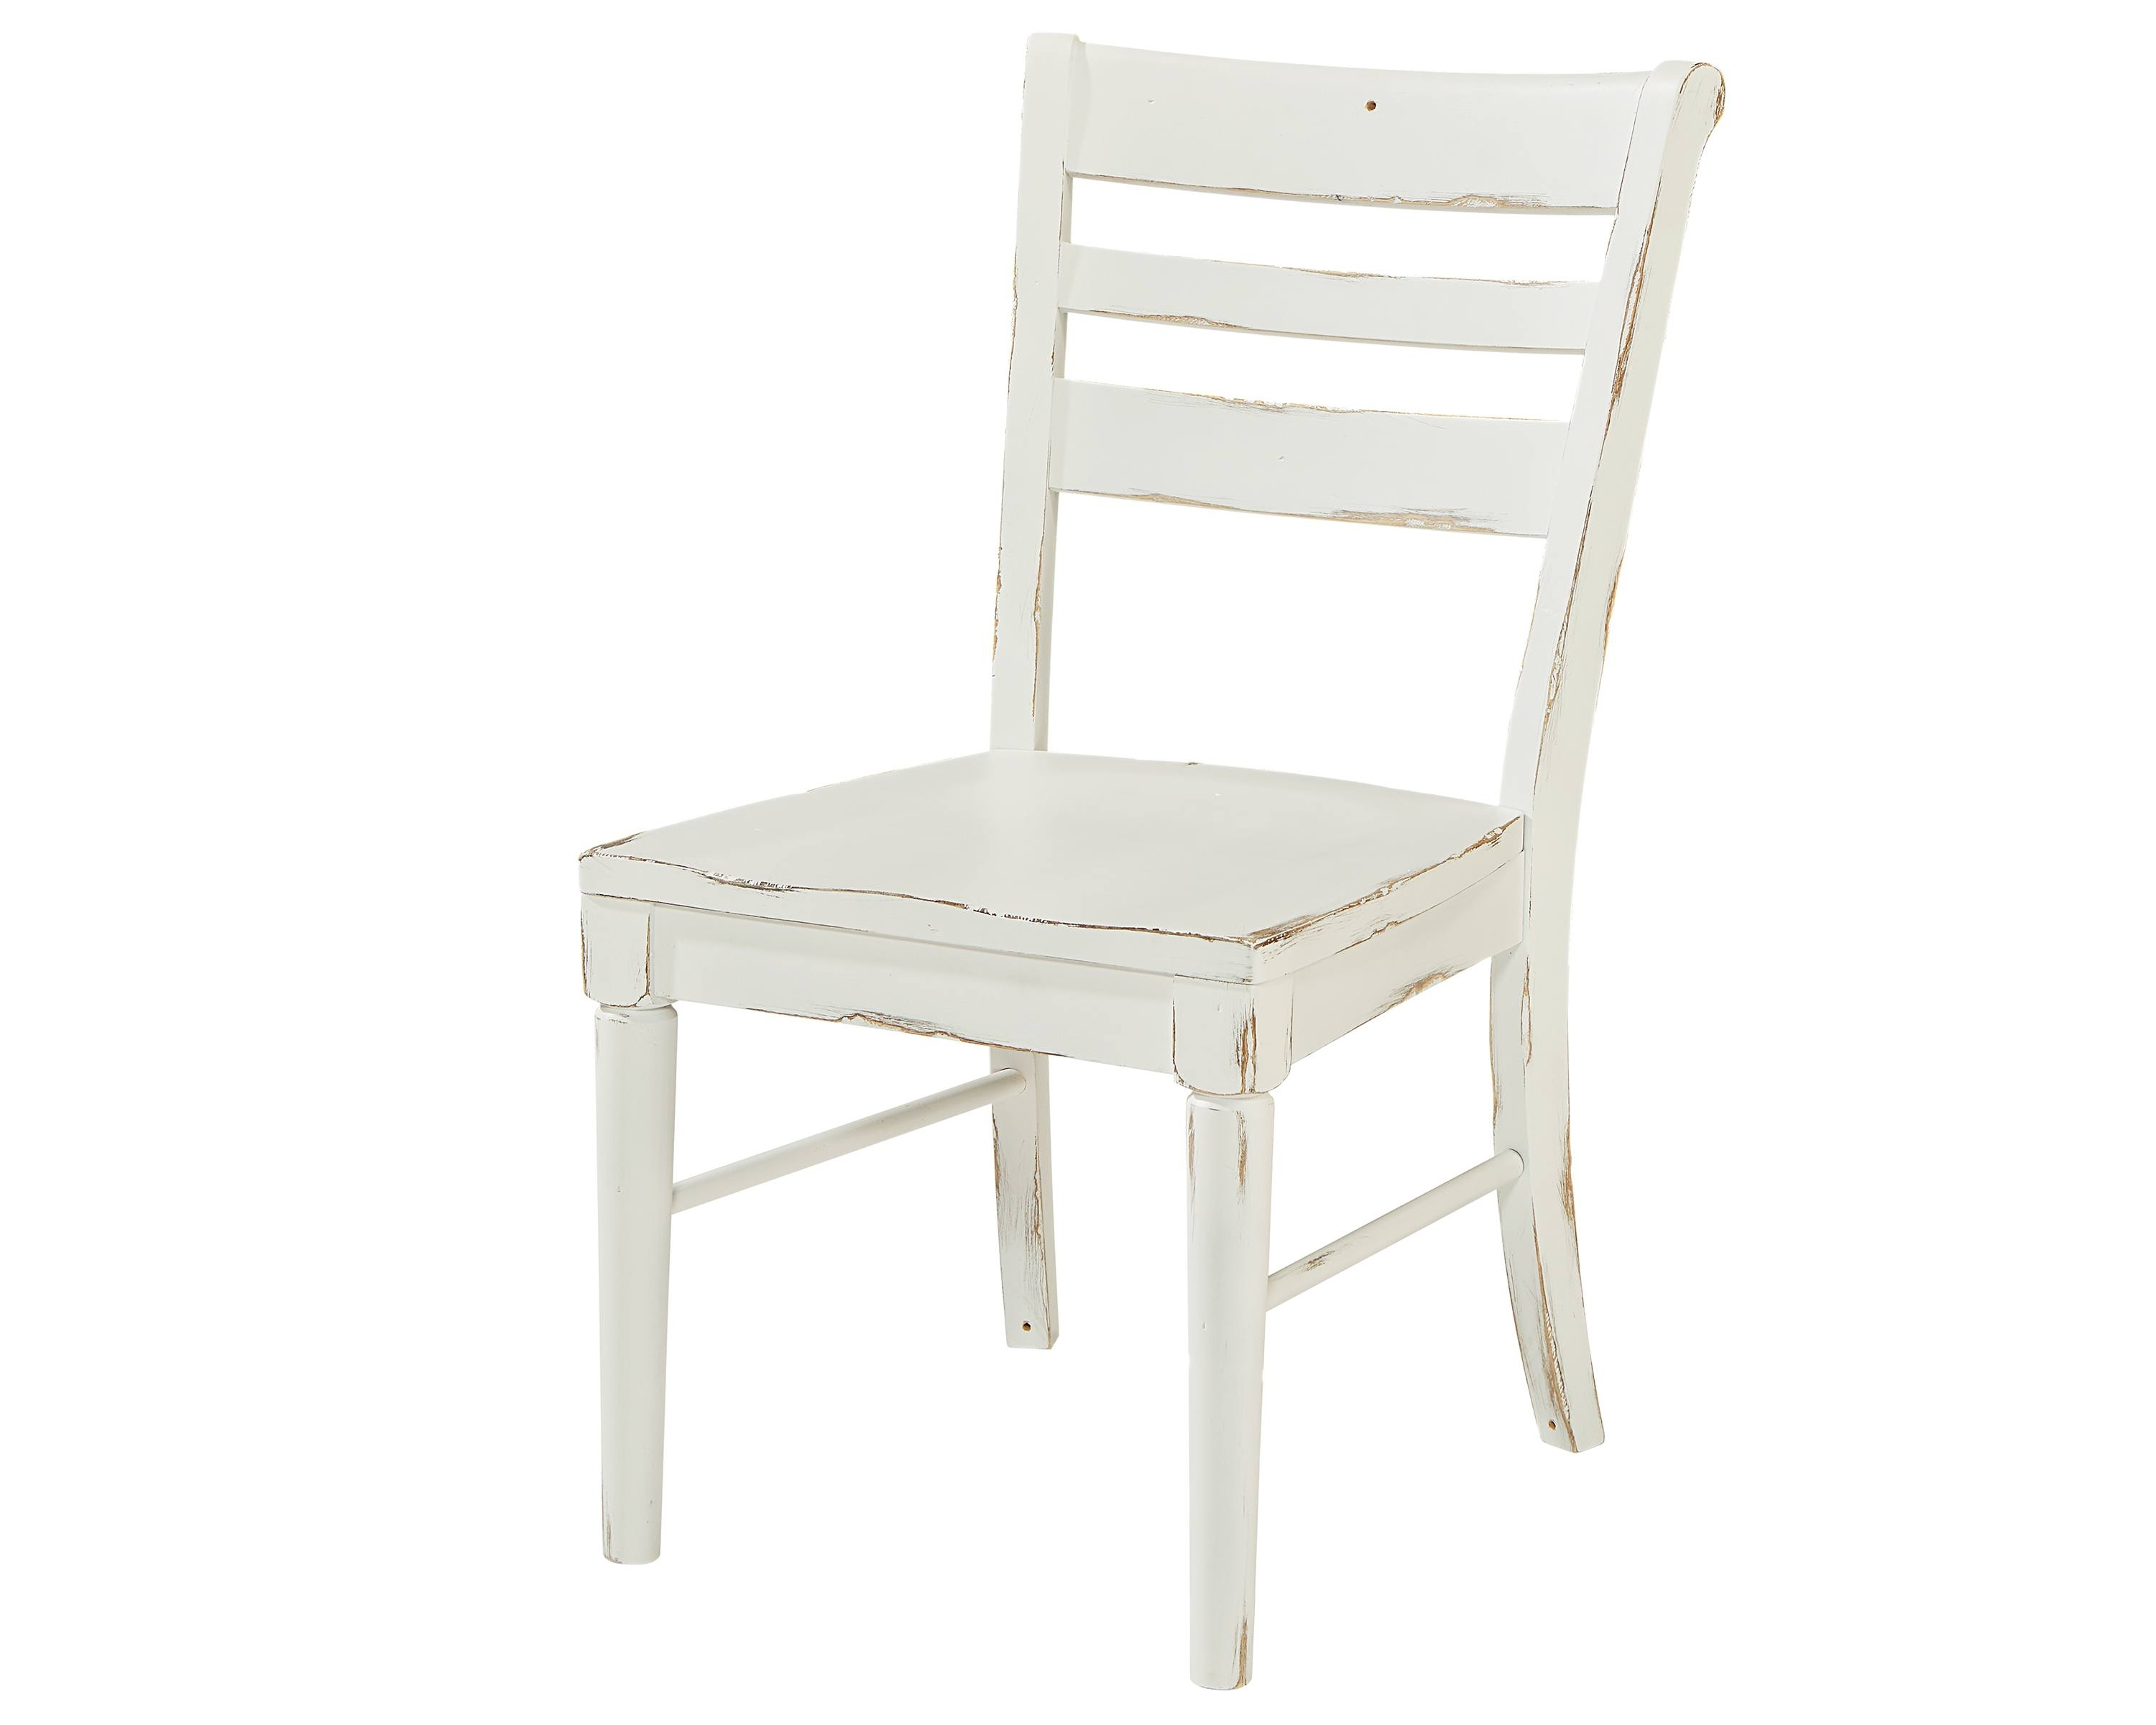 Magnolia Home Kempton Bench Side Chairs With Regard To Most Popular Kempton Side Chair – Magnolia Home (View 11 of 20)